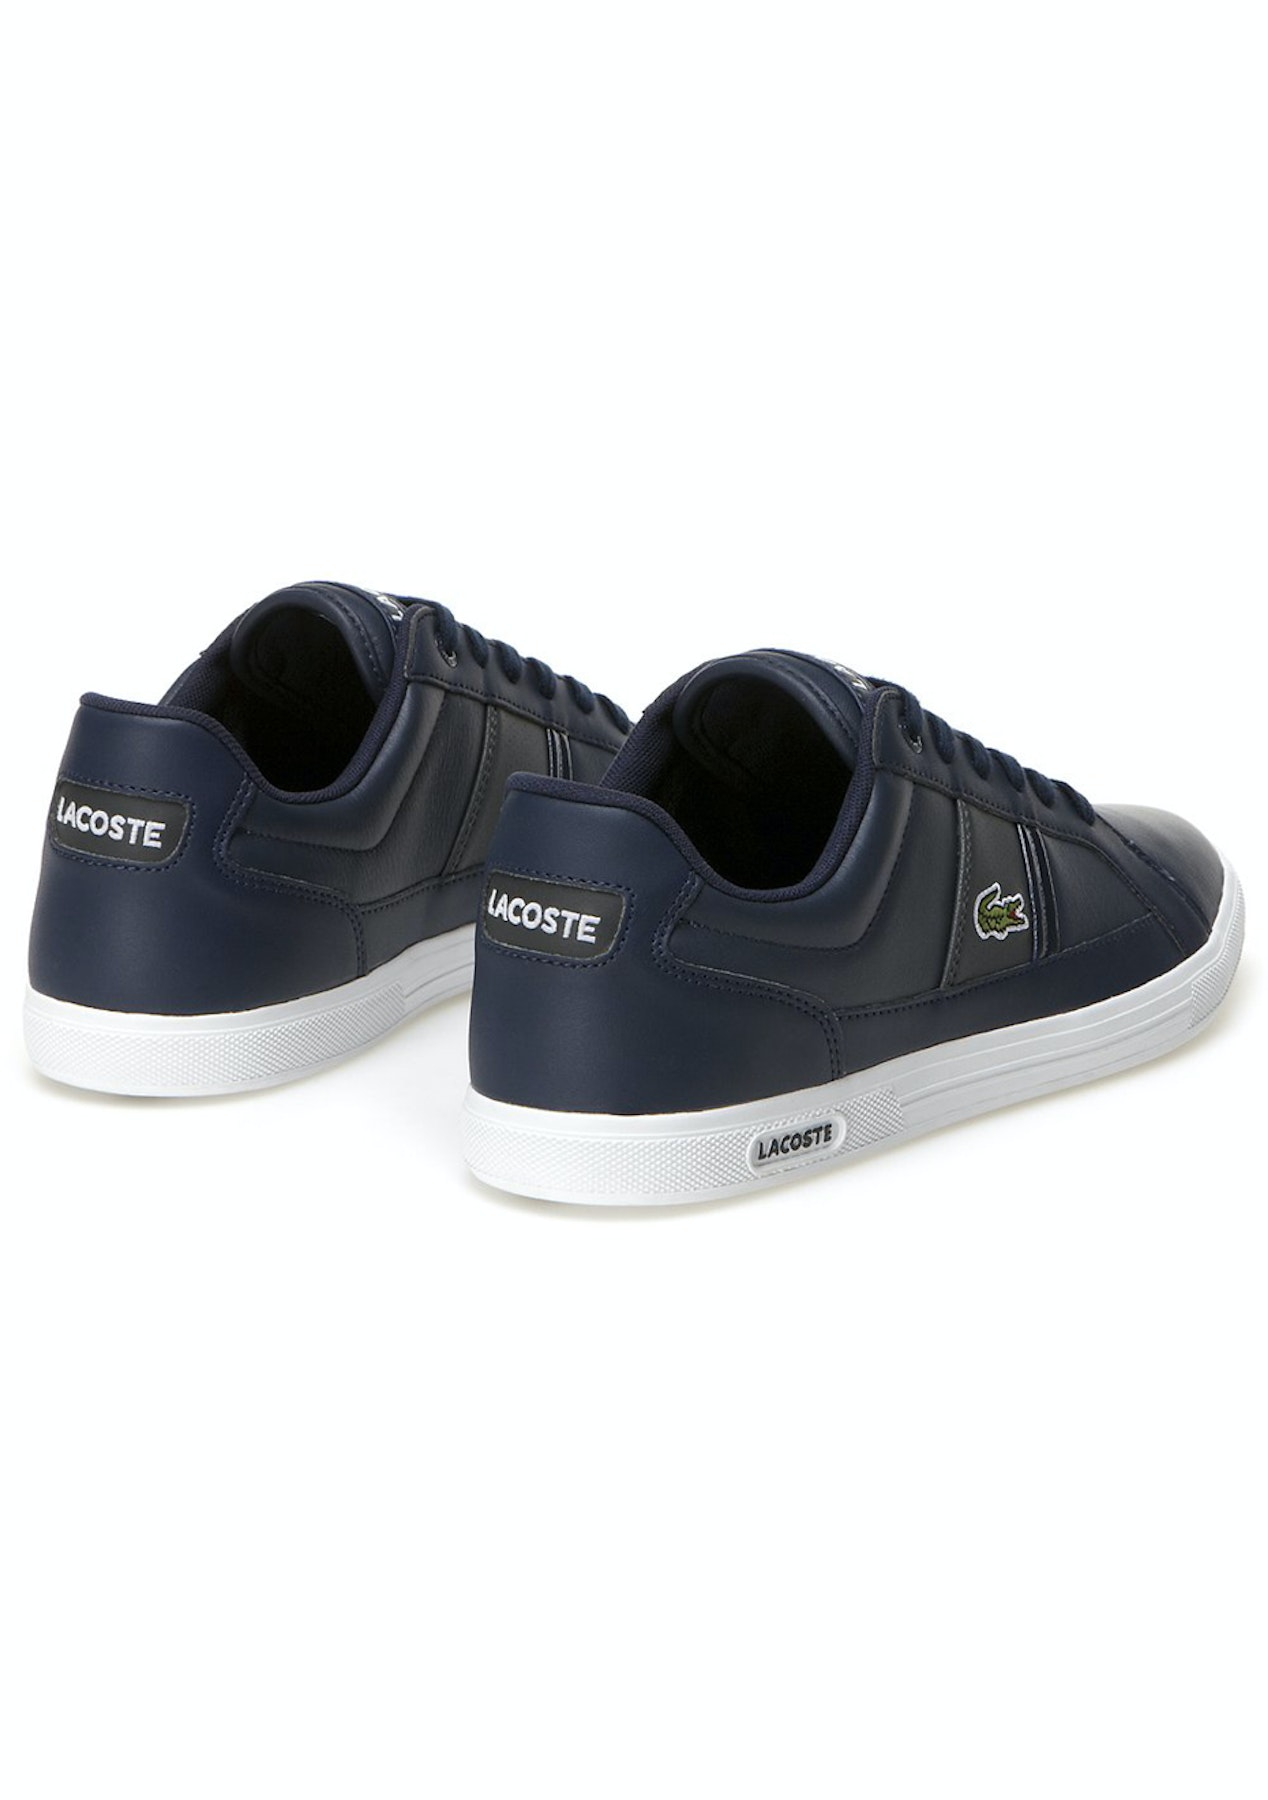 b44f673f6 Mens Lacoste - Europa Lcr3 Spm - Navy Dark Grey - Under  150 Women s Shoes  Sale - Onceit